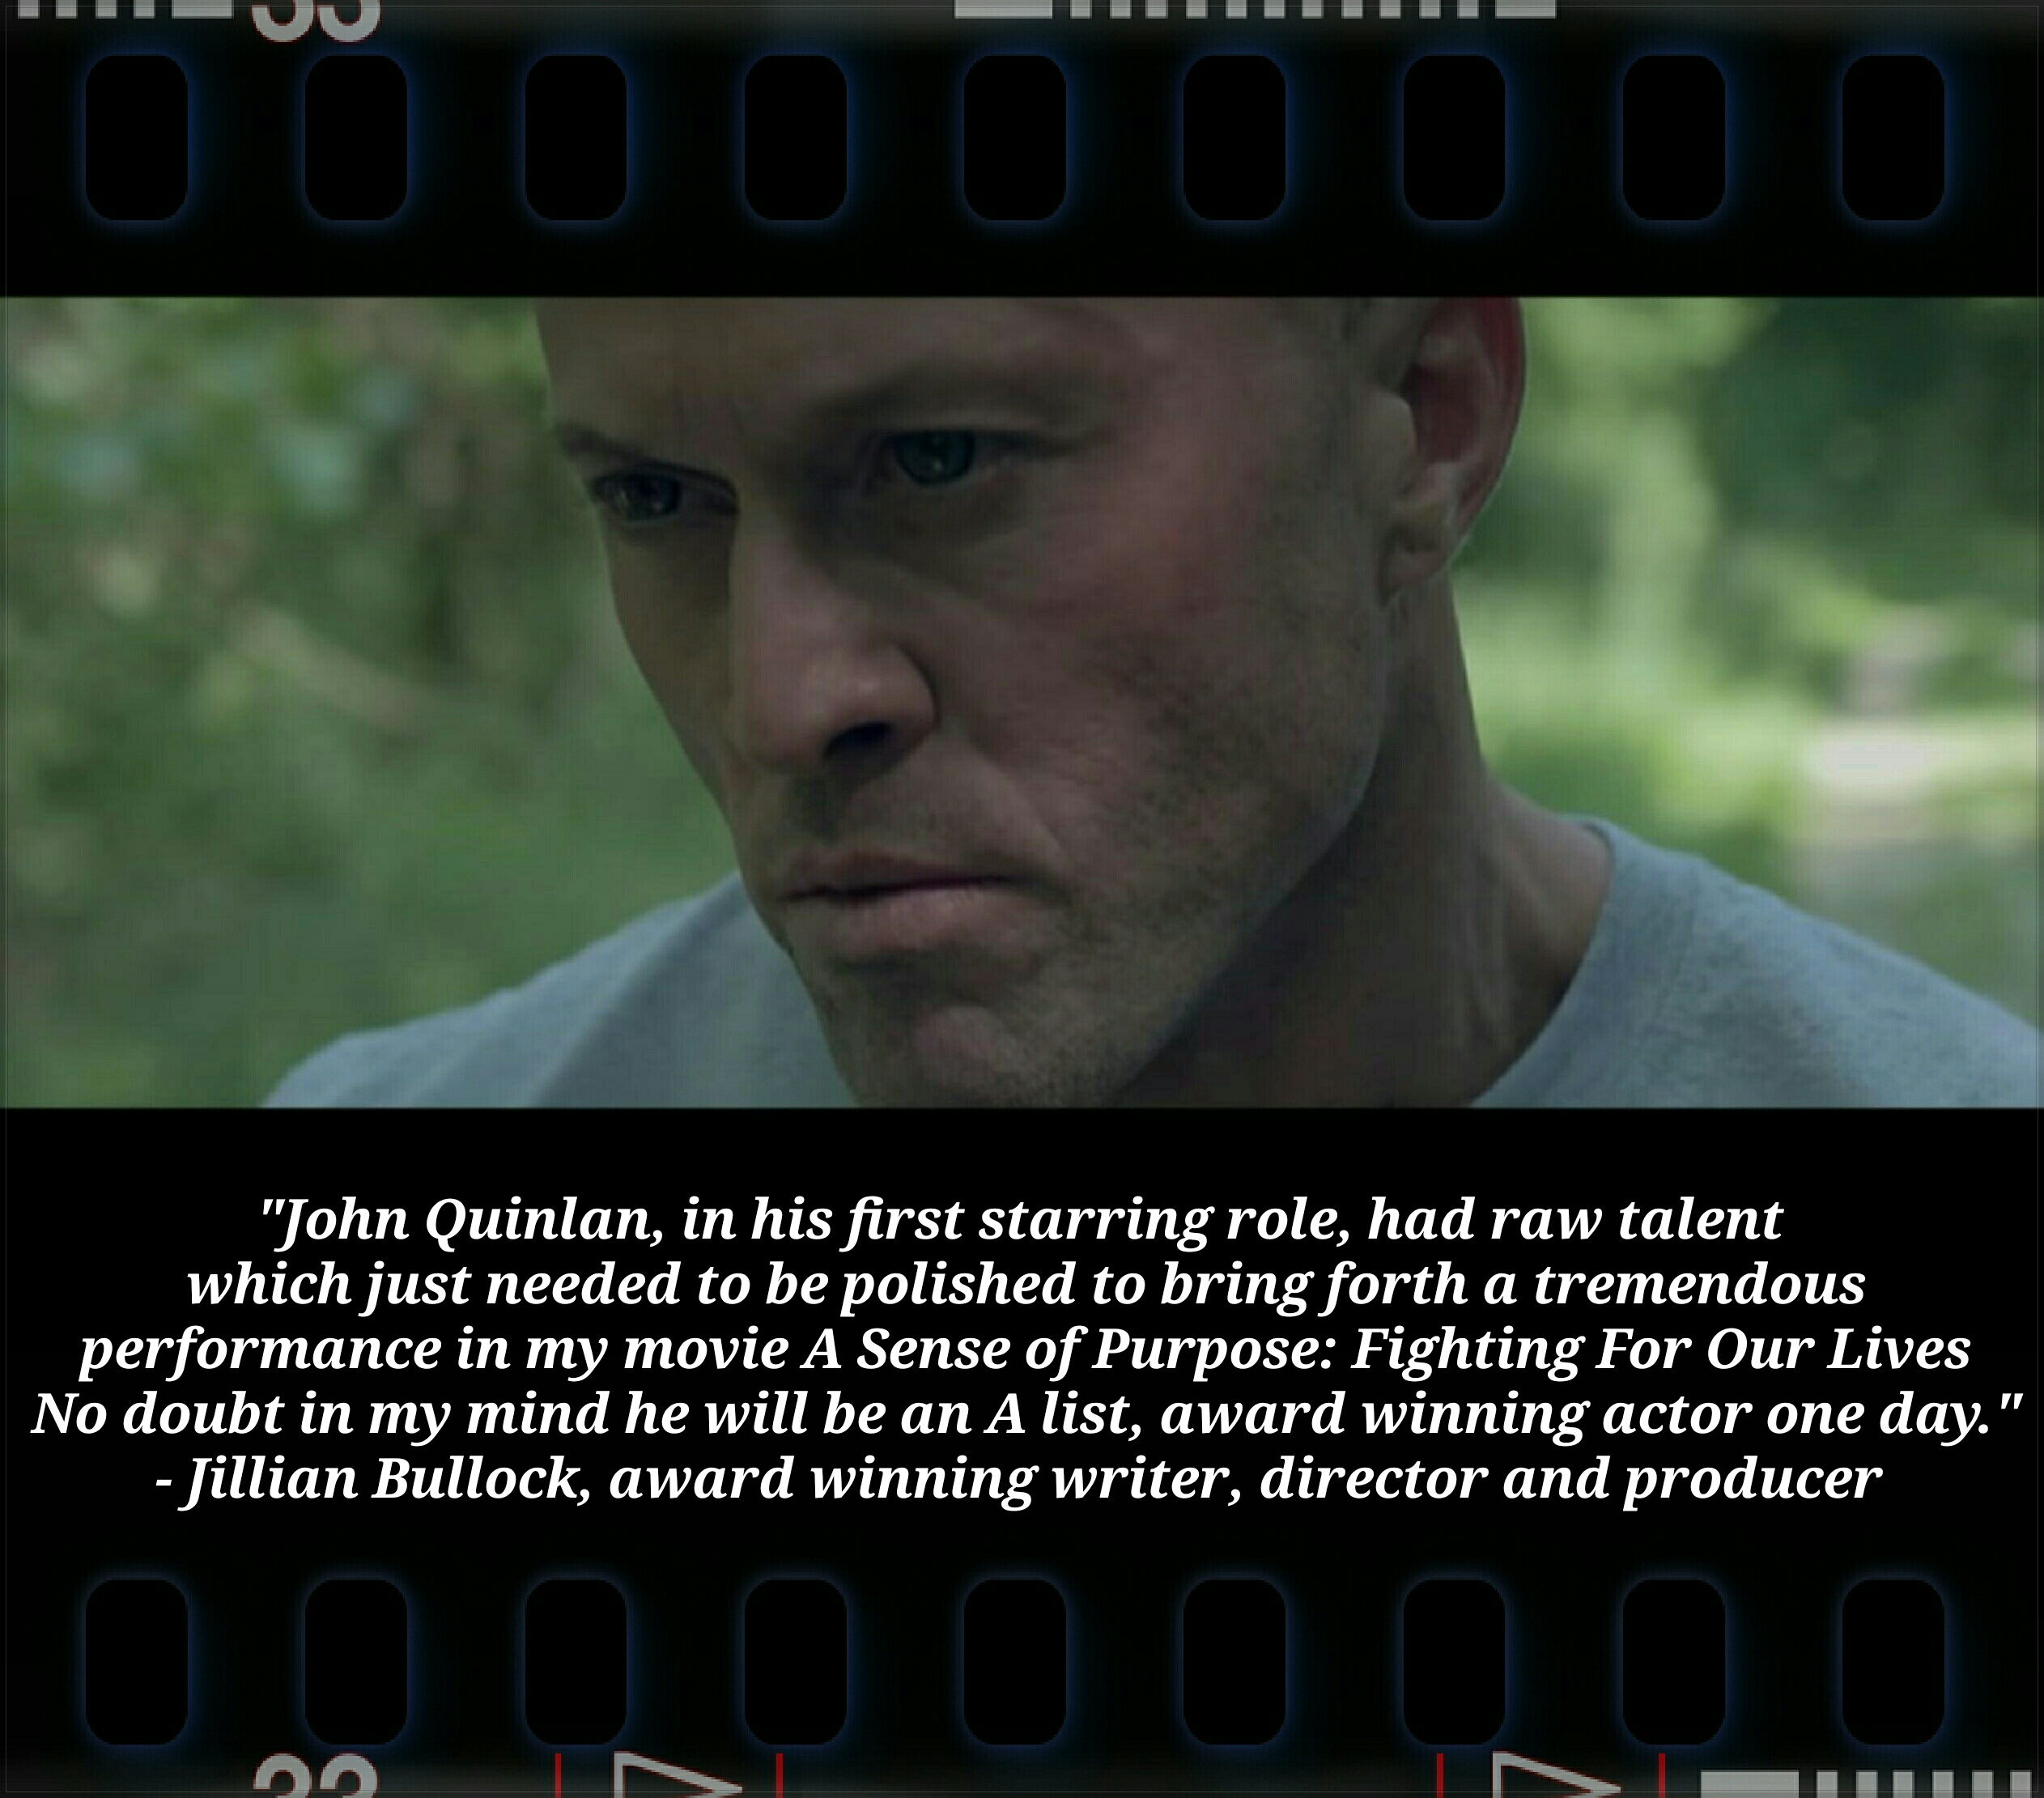 Model & Actor John Quinlan Testimonial by Jillian Bullock #JohnQuinlan